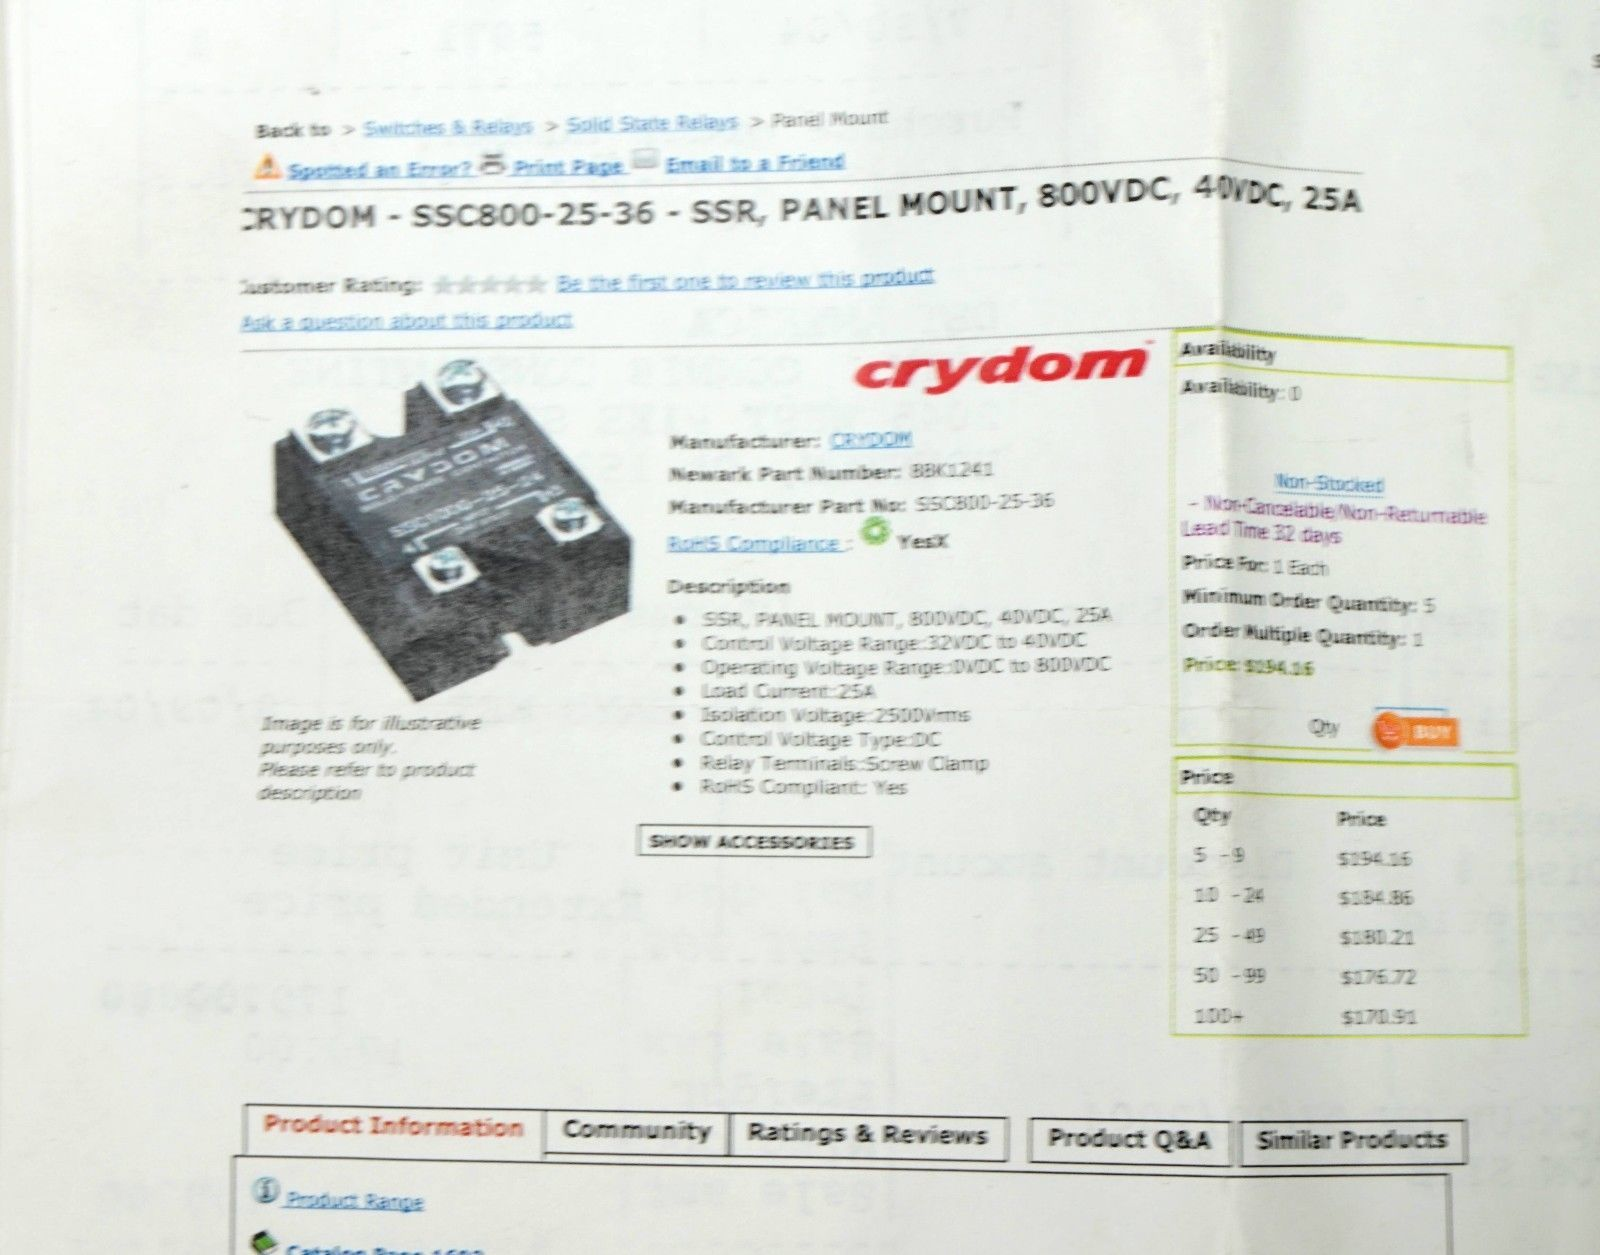 Crydom Ssc800 25 36 Solid State Relay Output And 50 Similar Items Brands 800 Vdc Amp Input 36v